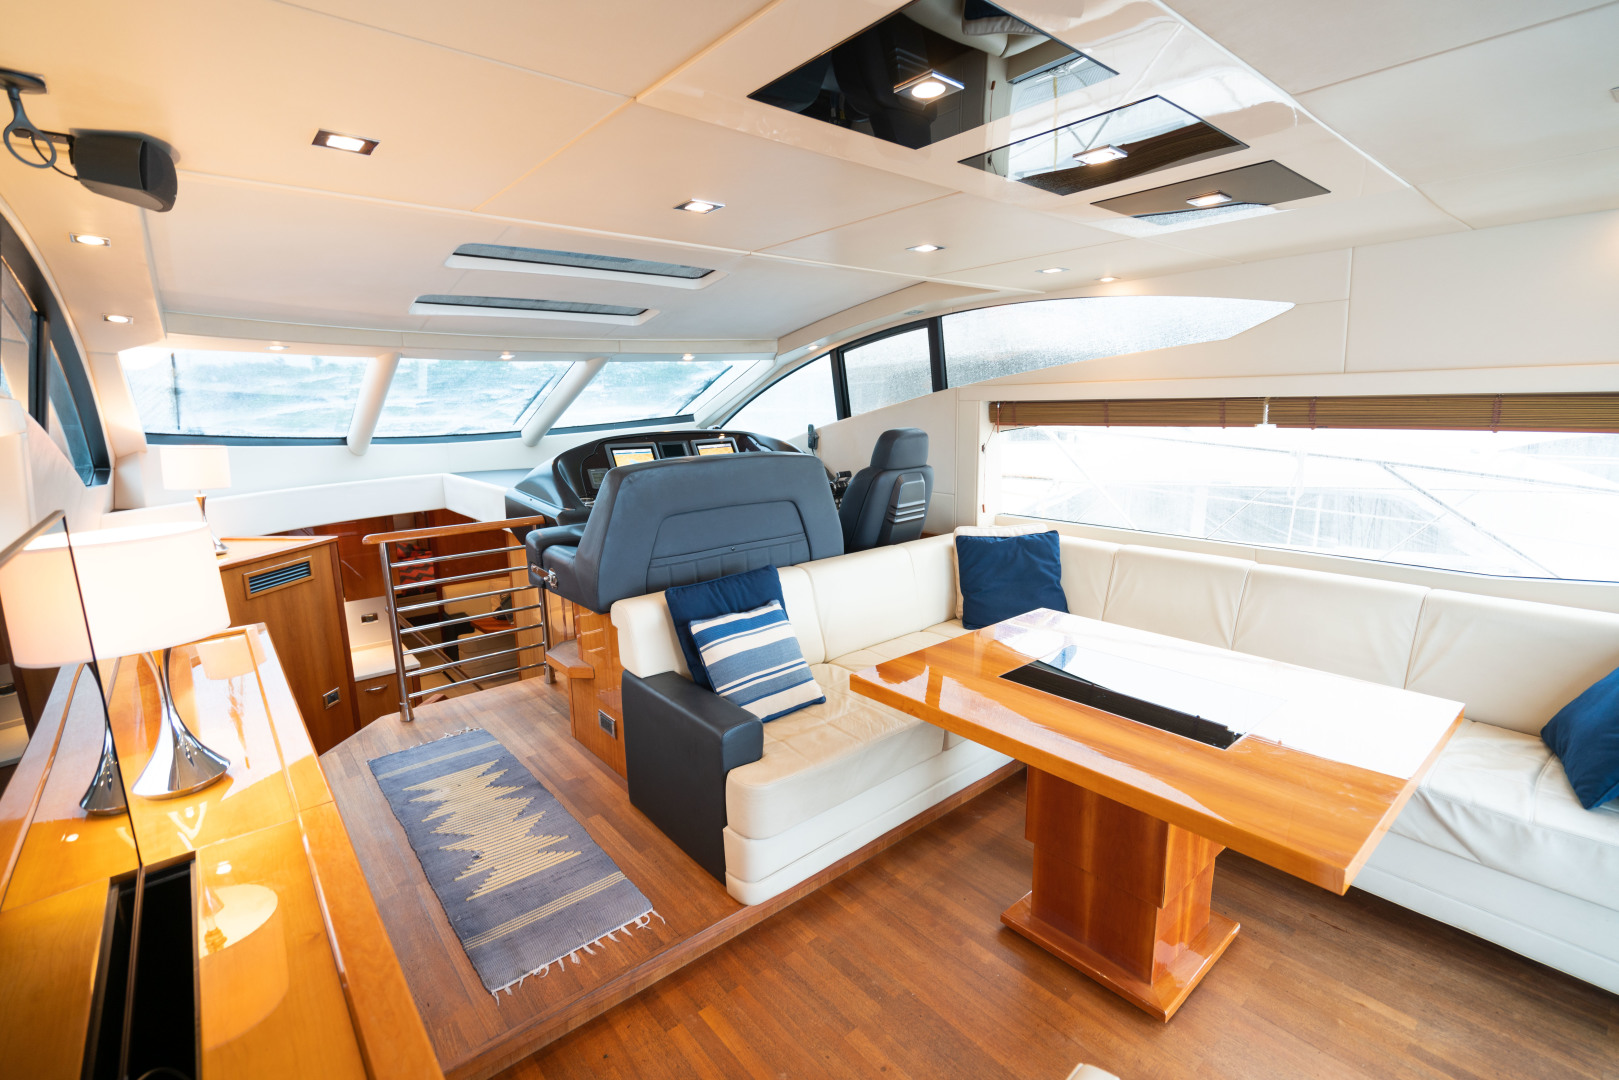 64 Sunseeker Salon/Helm